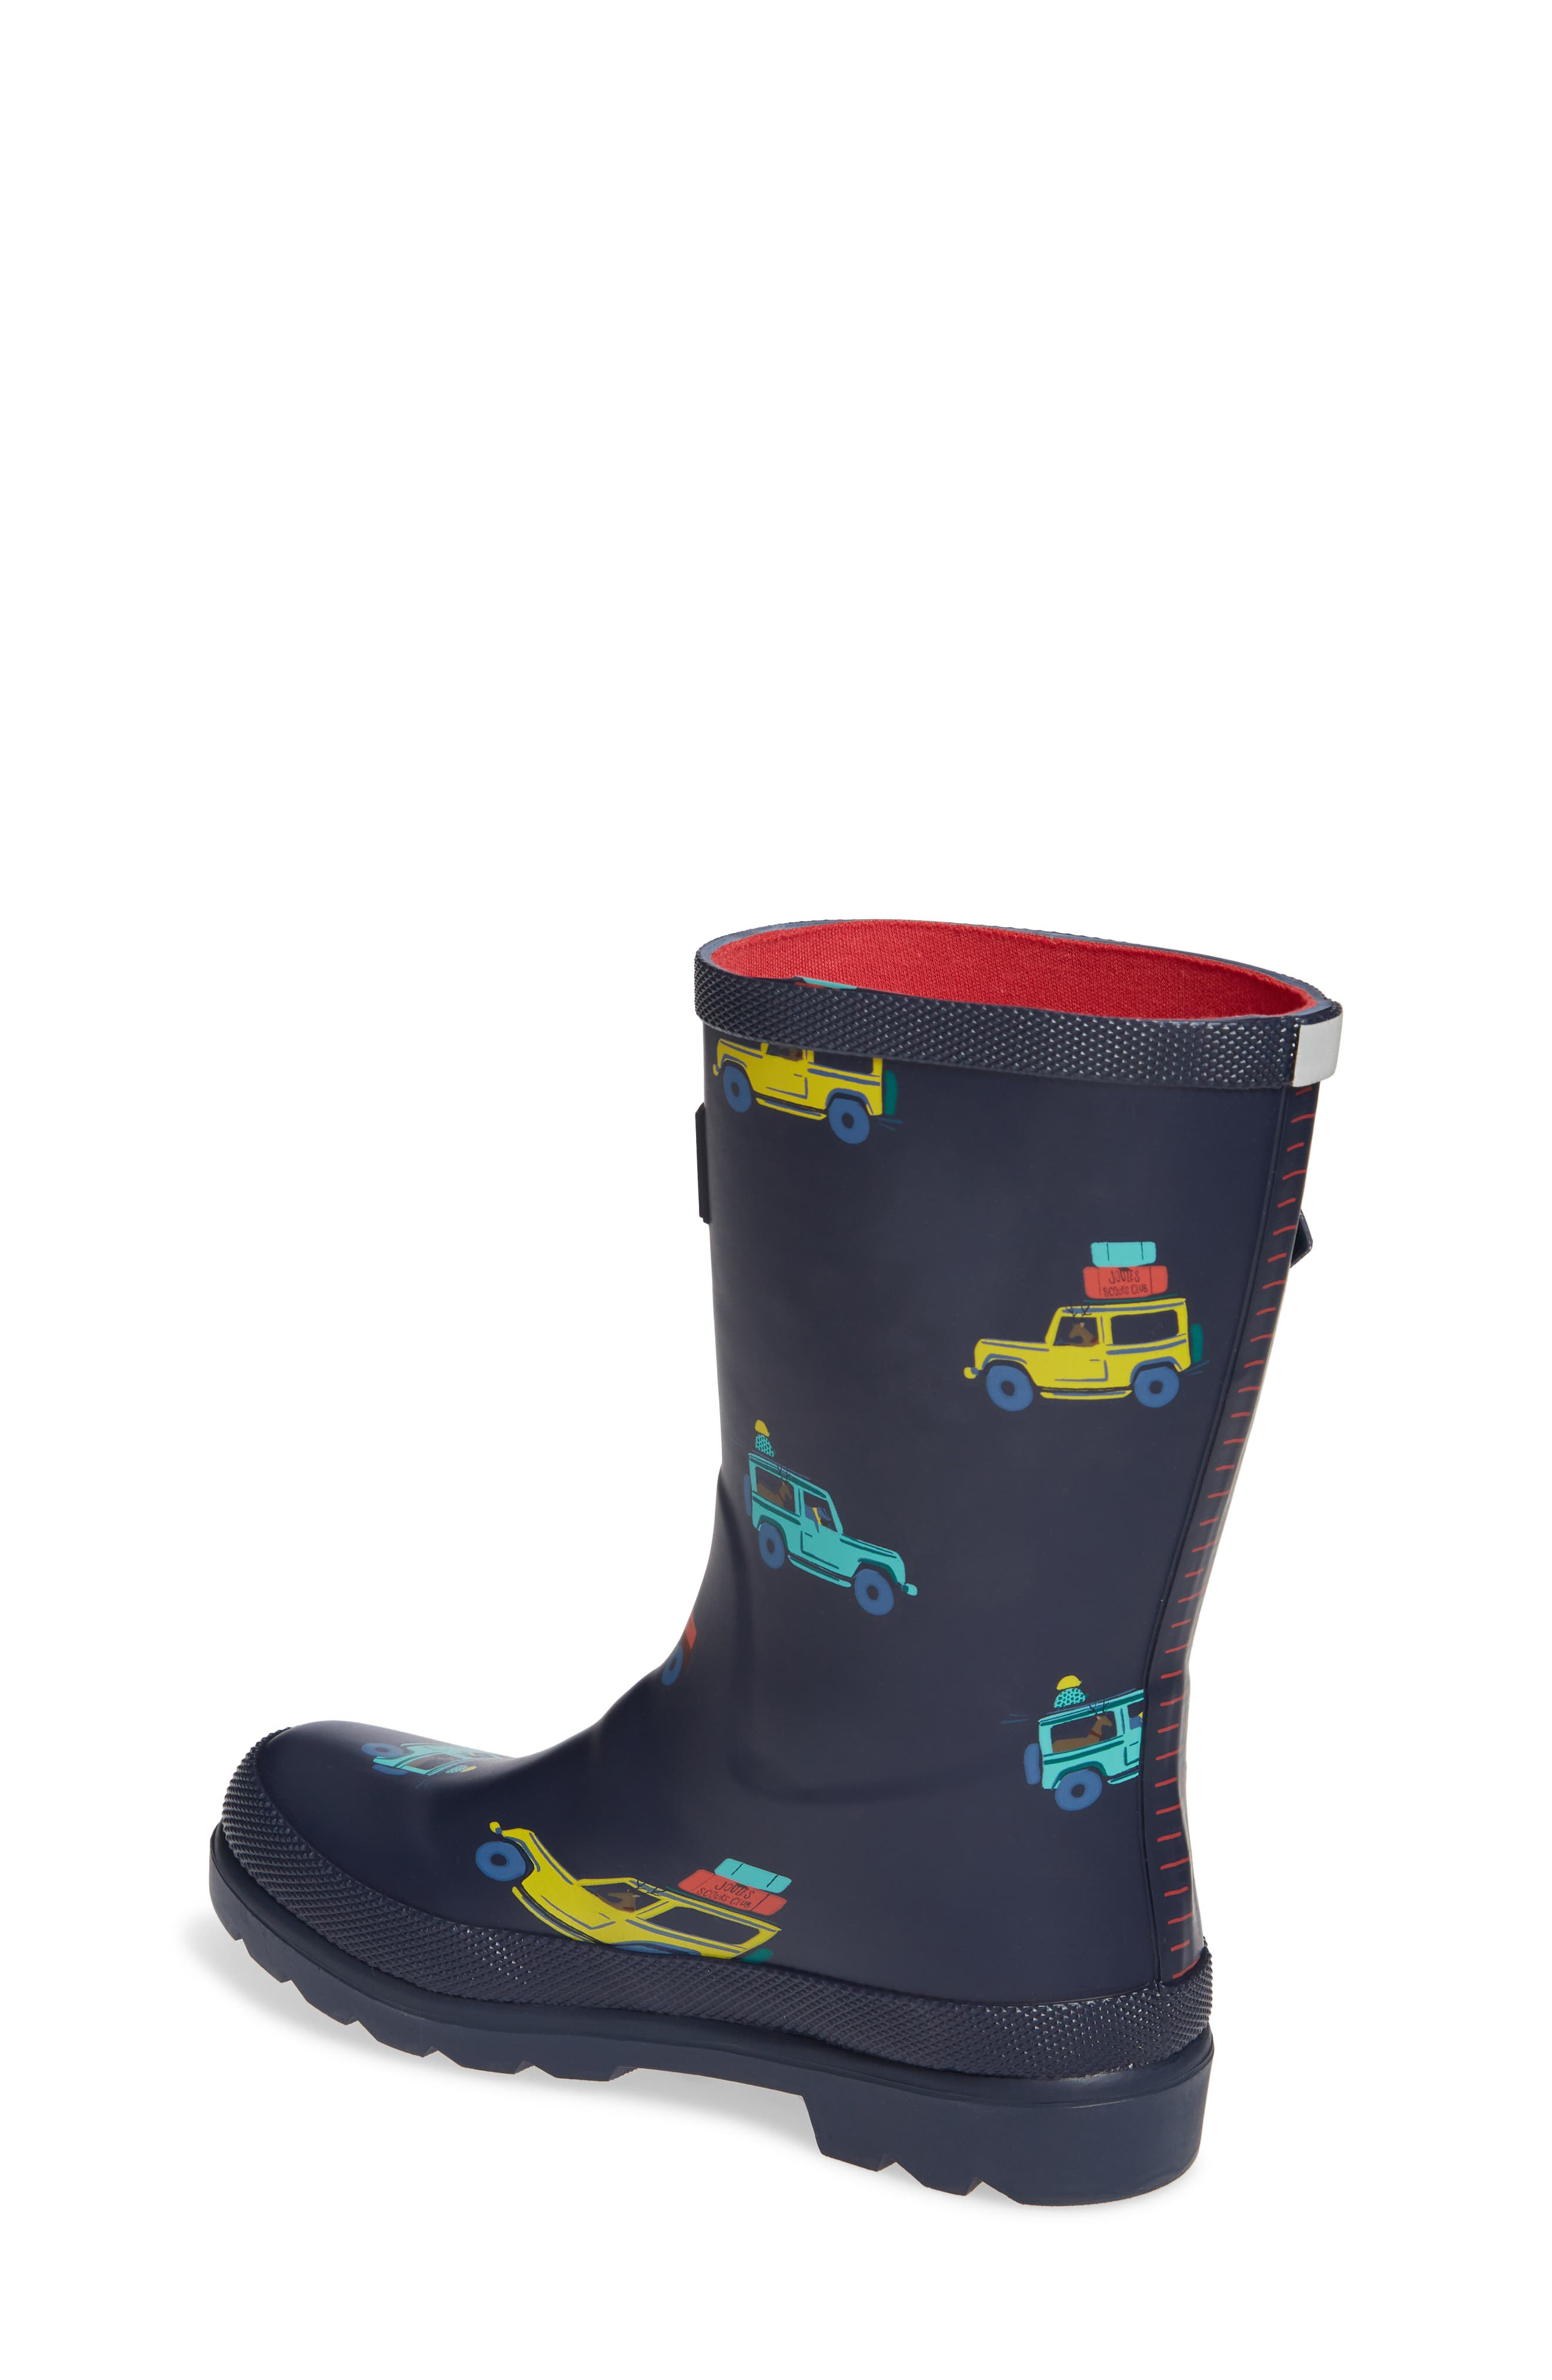 JOULES, Welly Print Waterproof Rain Boot, Alternate thumbnail 2, color, NAVY SCOUT AND ABOUT